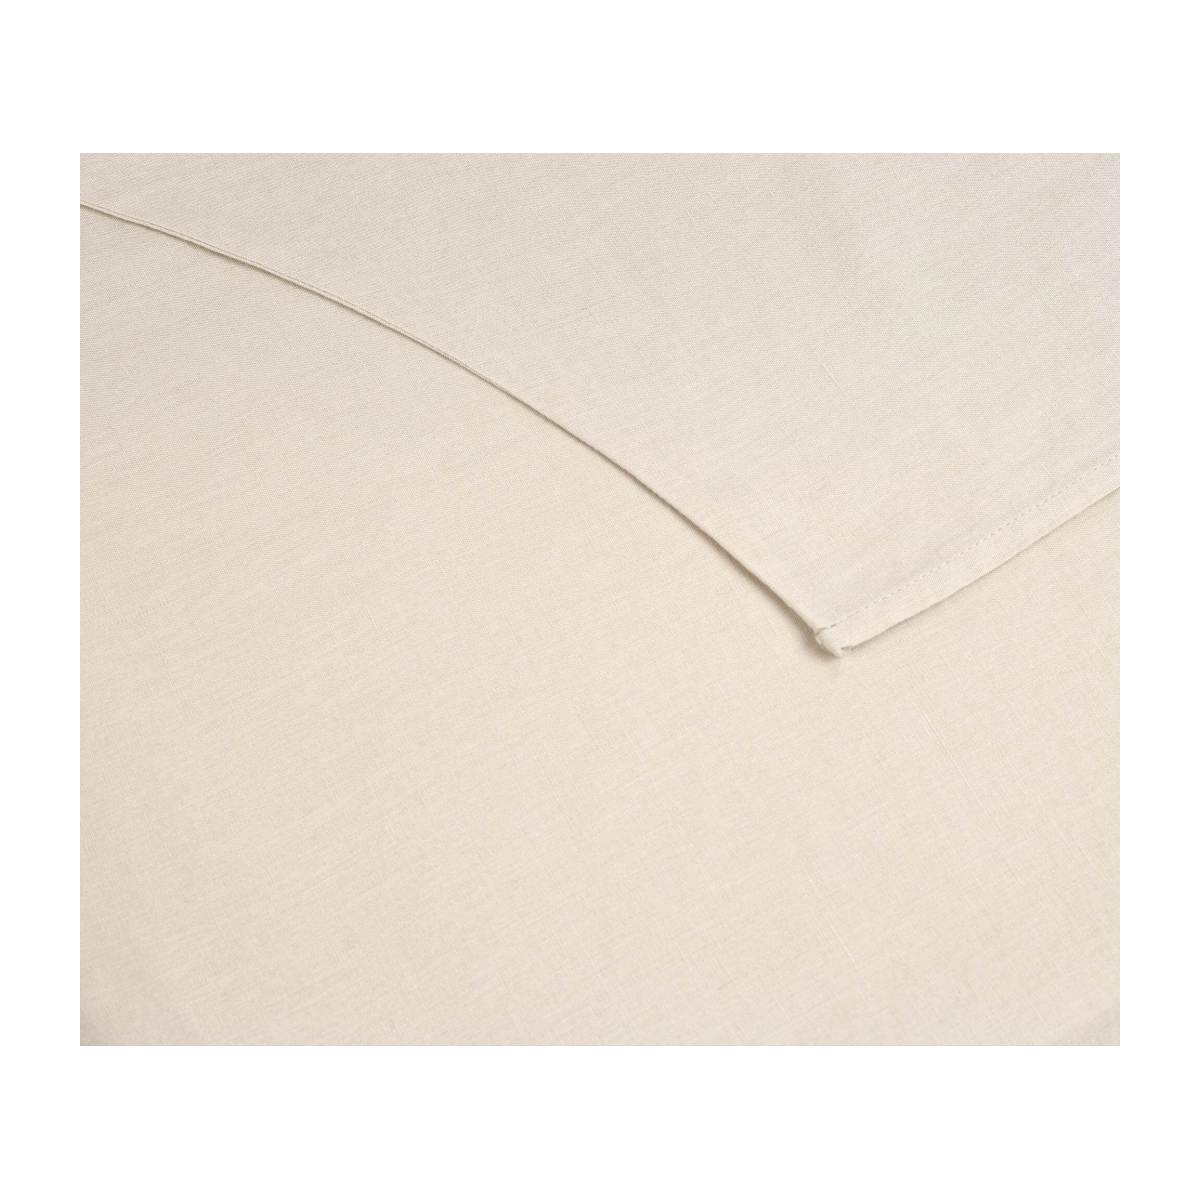 Duvet cover made of flax 200x200cm, natural n°3